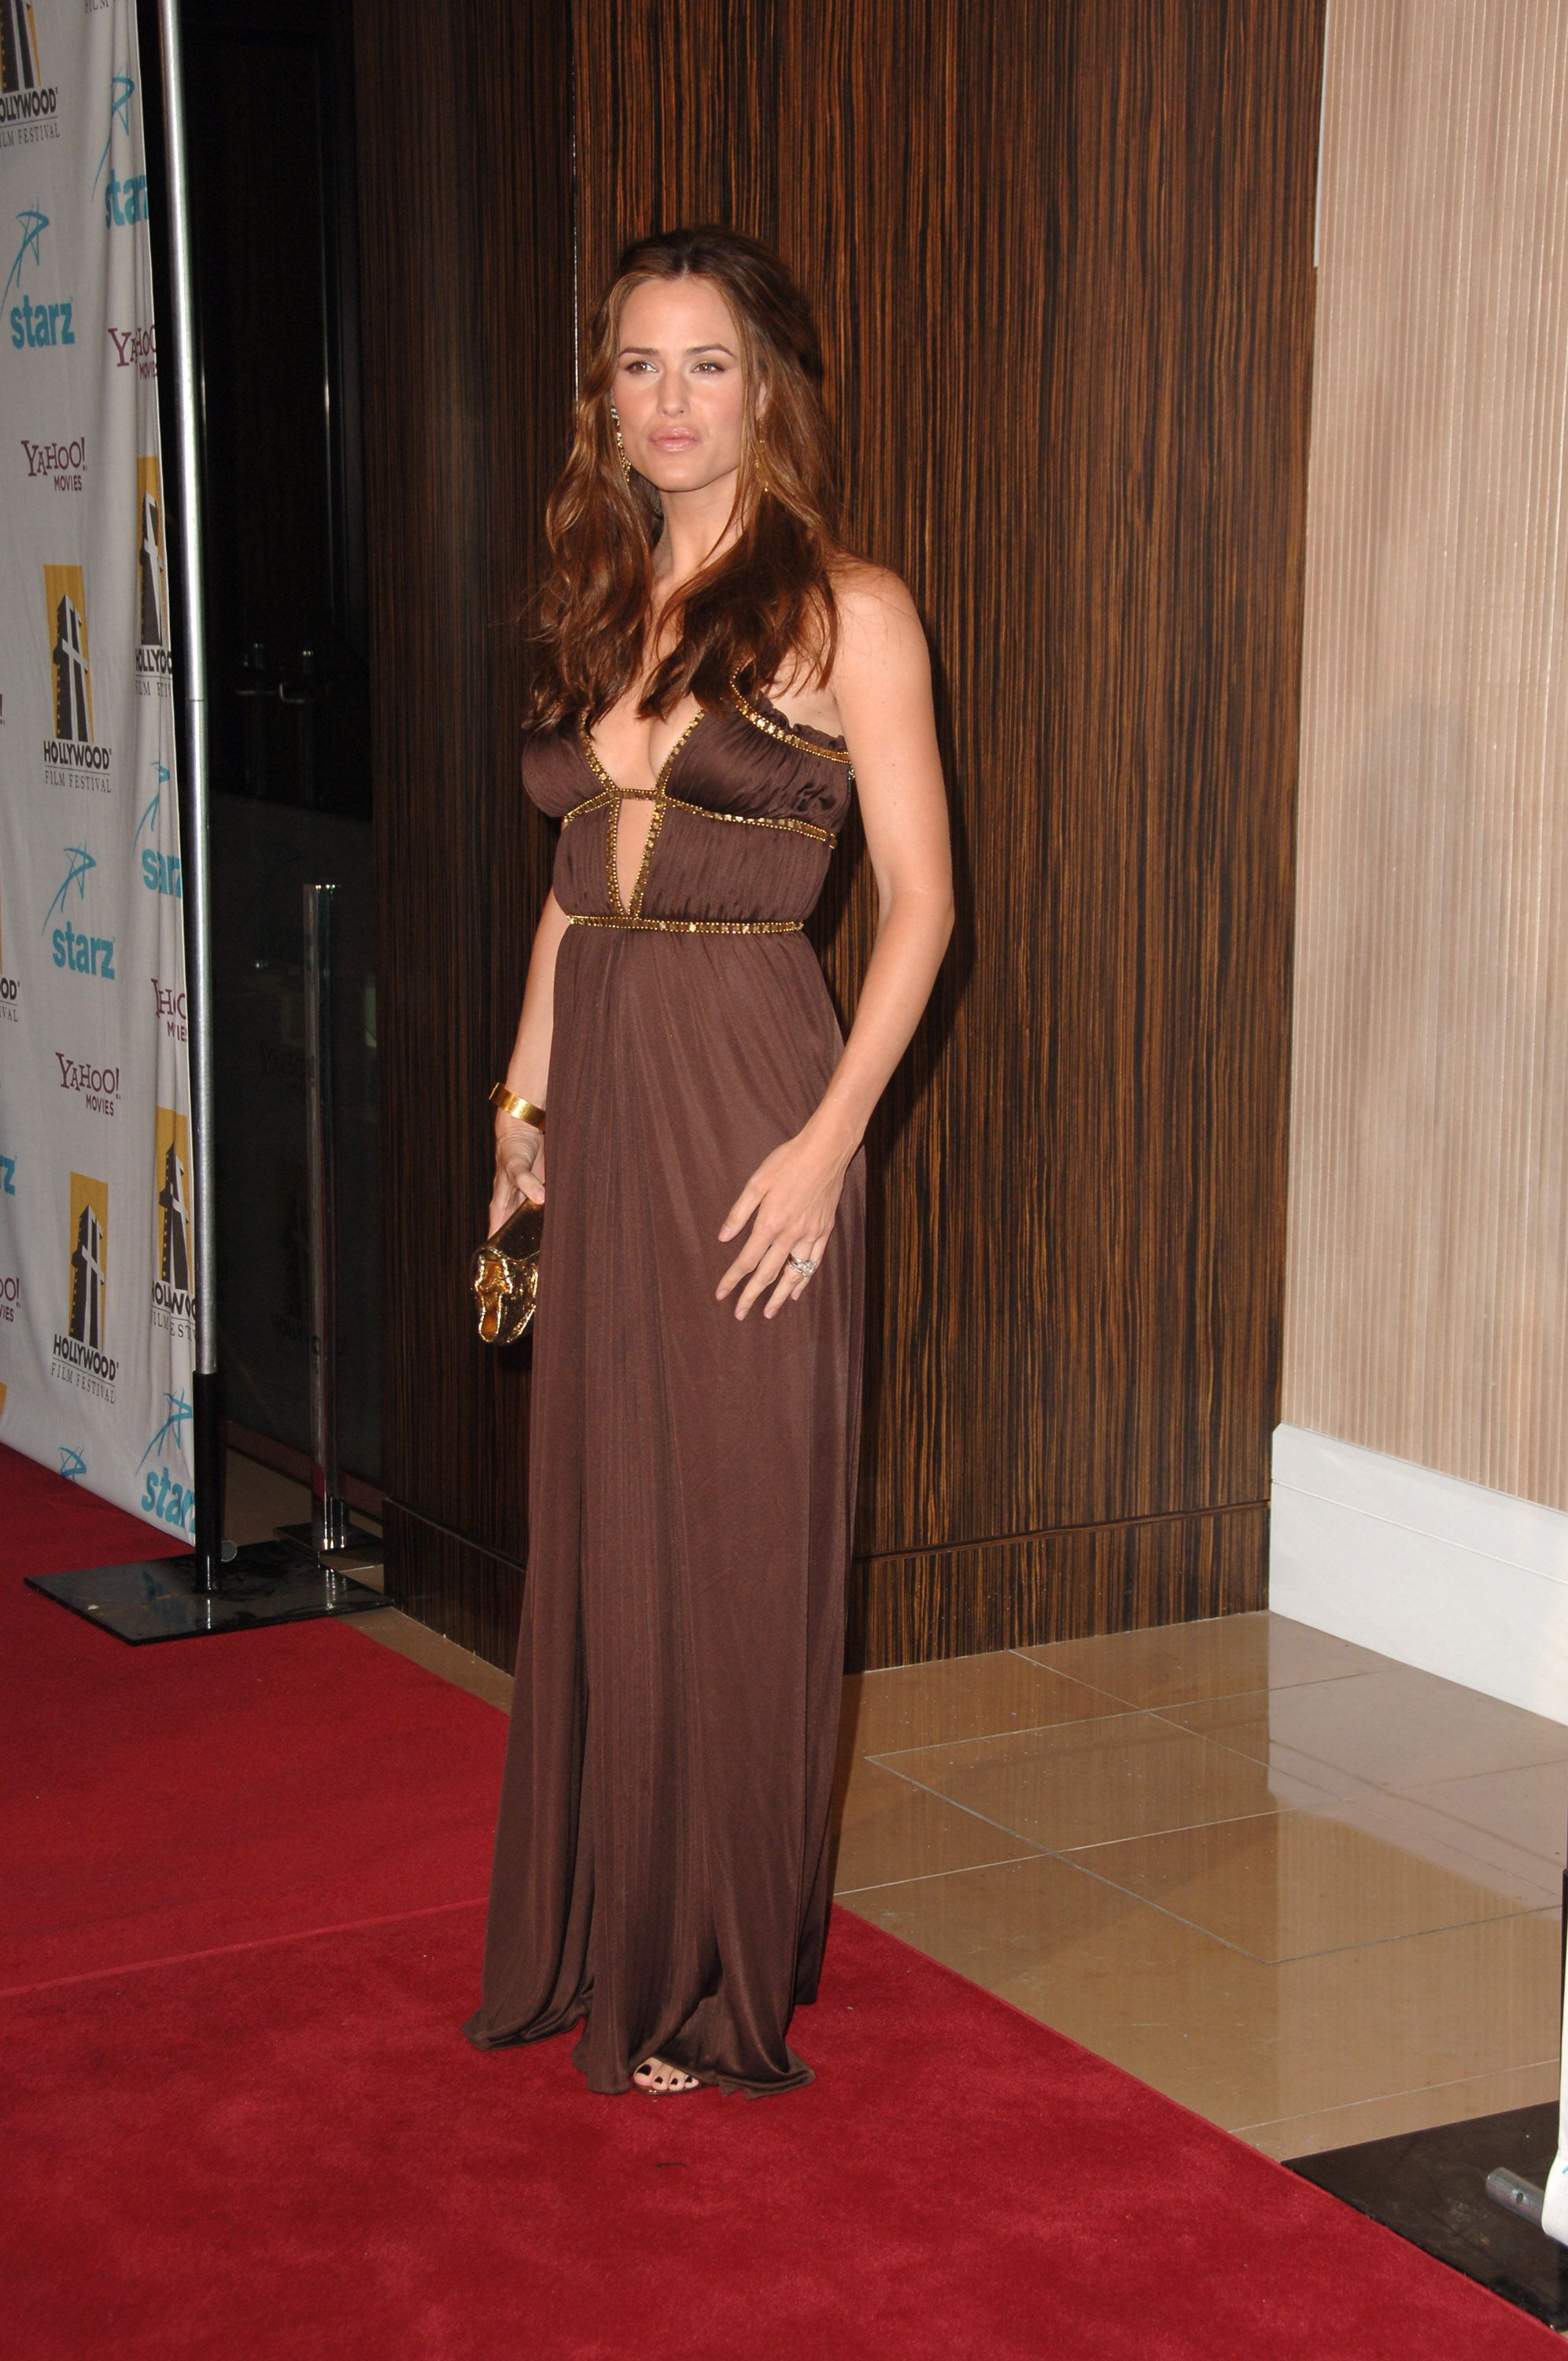 October 23, 2006 In a brown gown at the 10th annual Hollywood Film Festival in Beverly Hills.